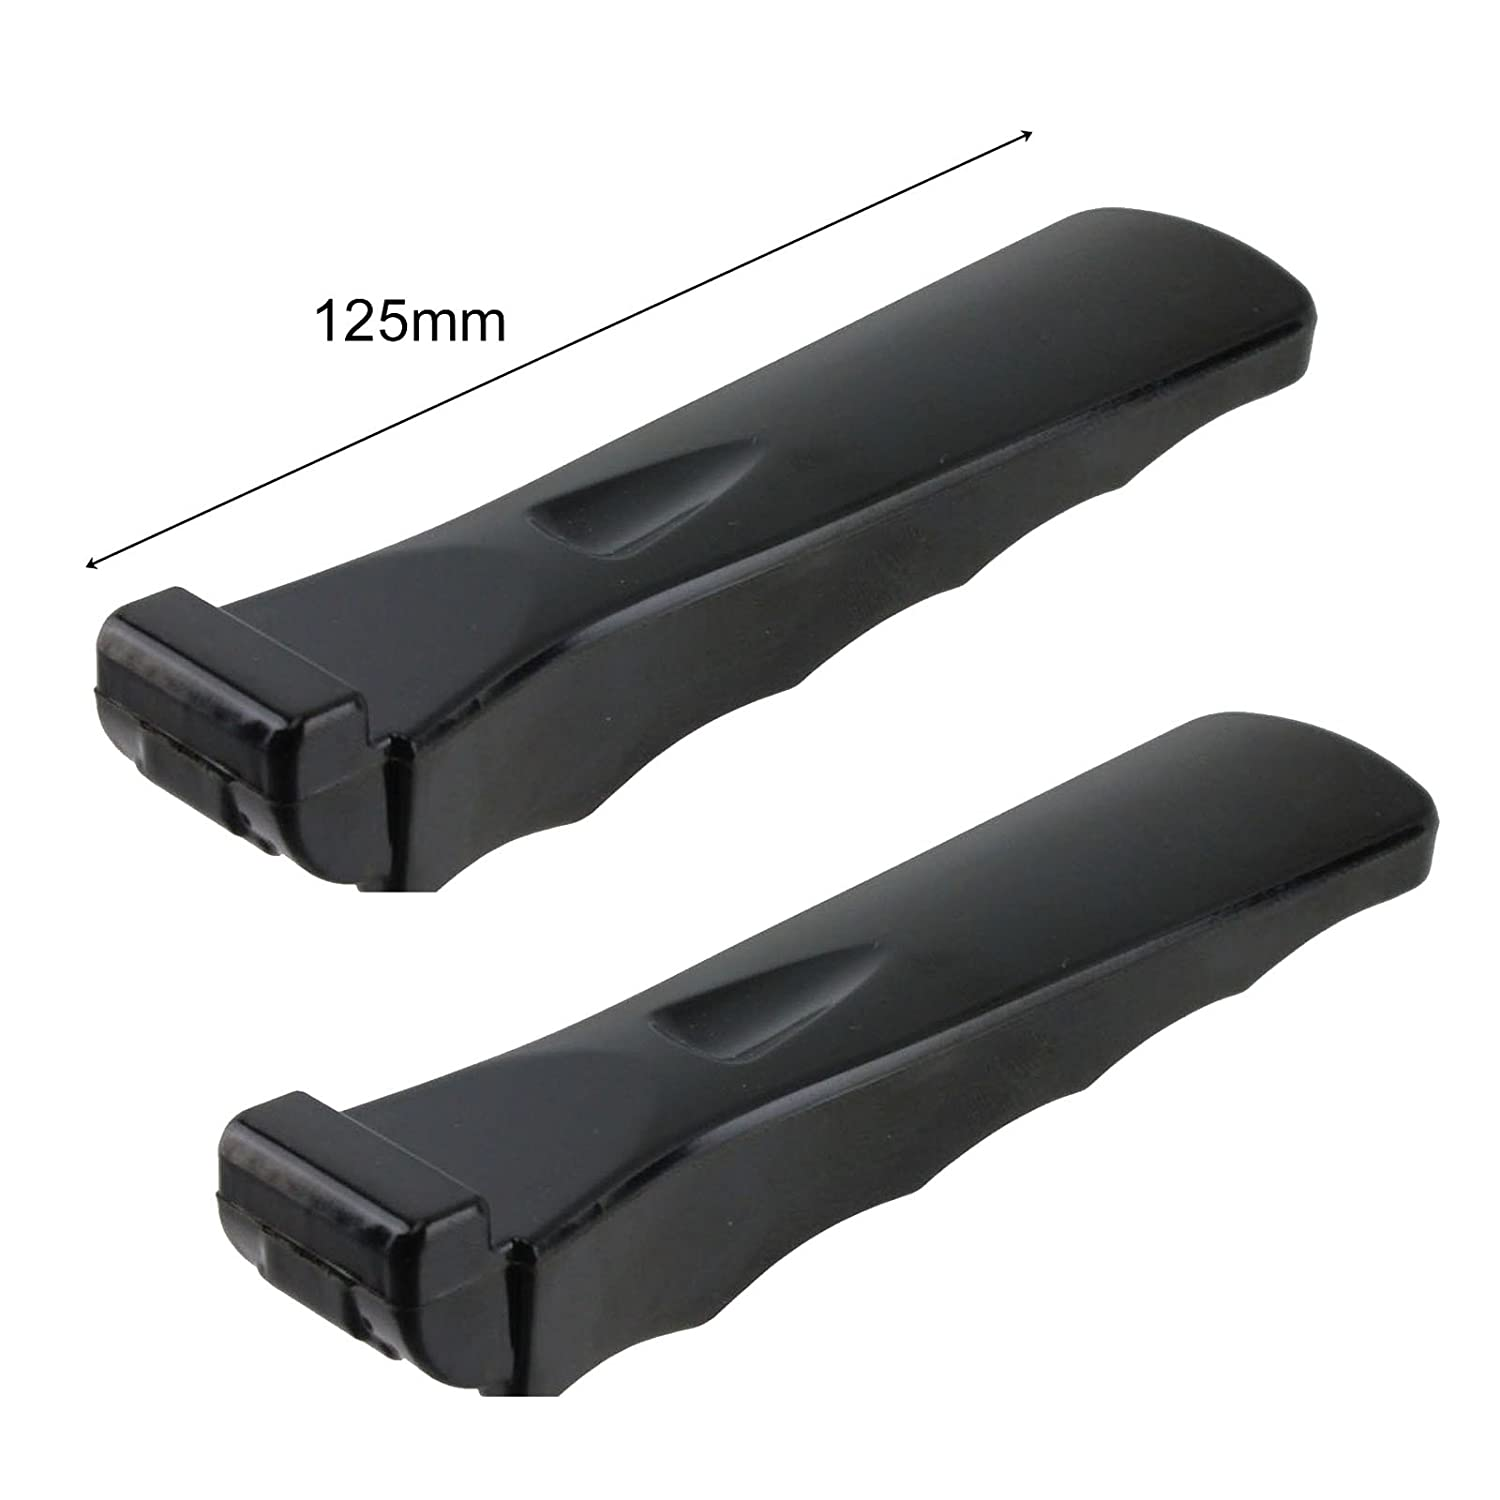 Spares2go Universal Oven Cooker Grill Pan Moulded Grip Detachable Handle (Pack Of 2)